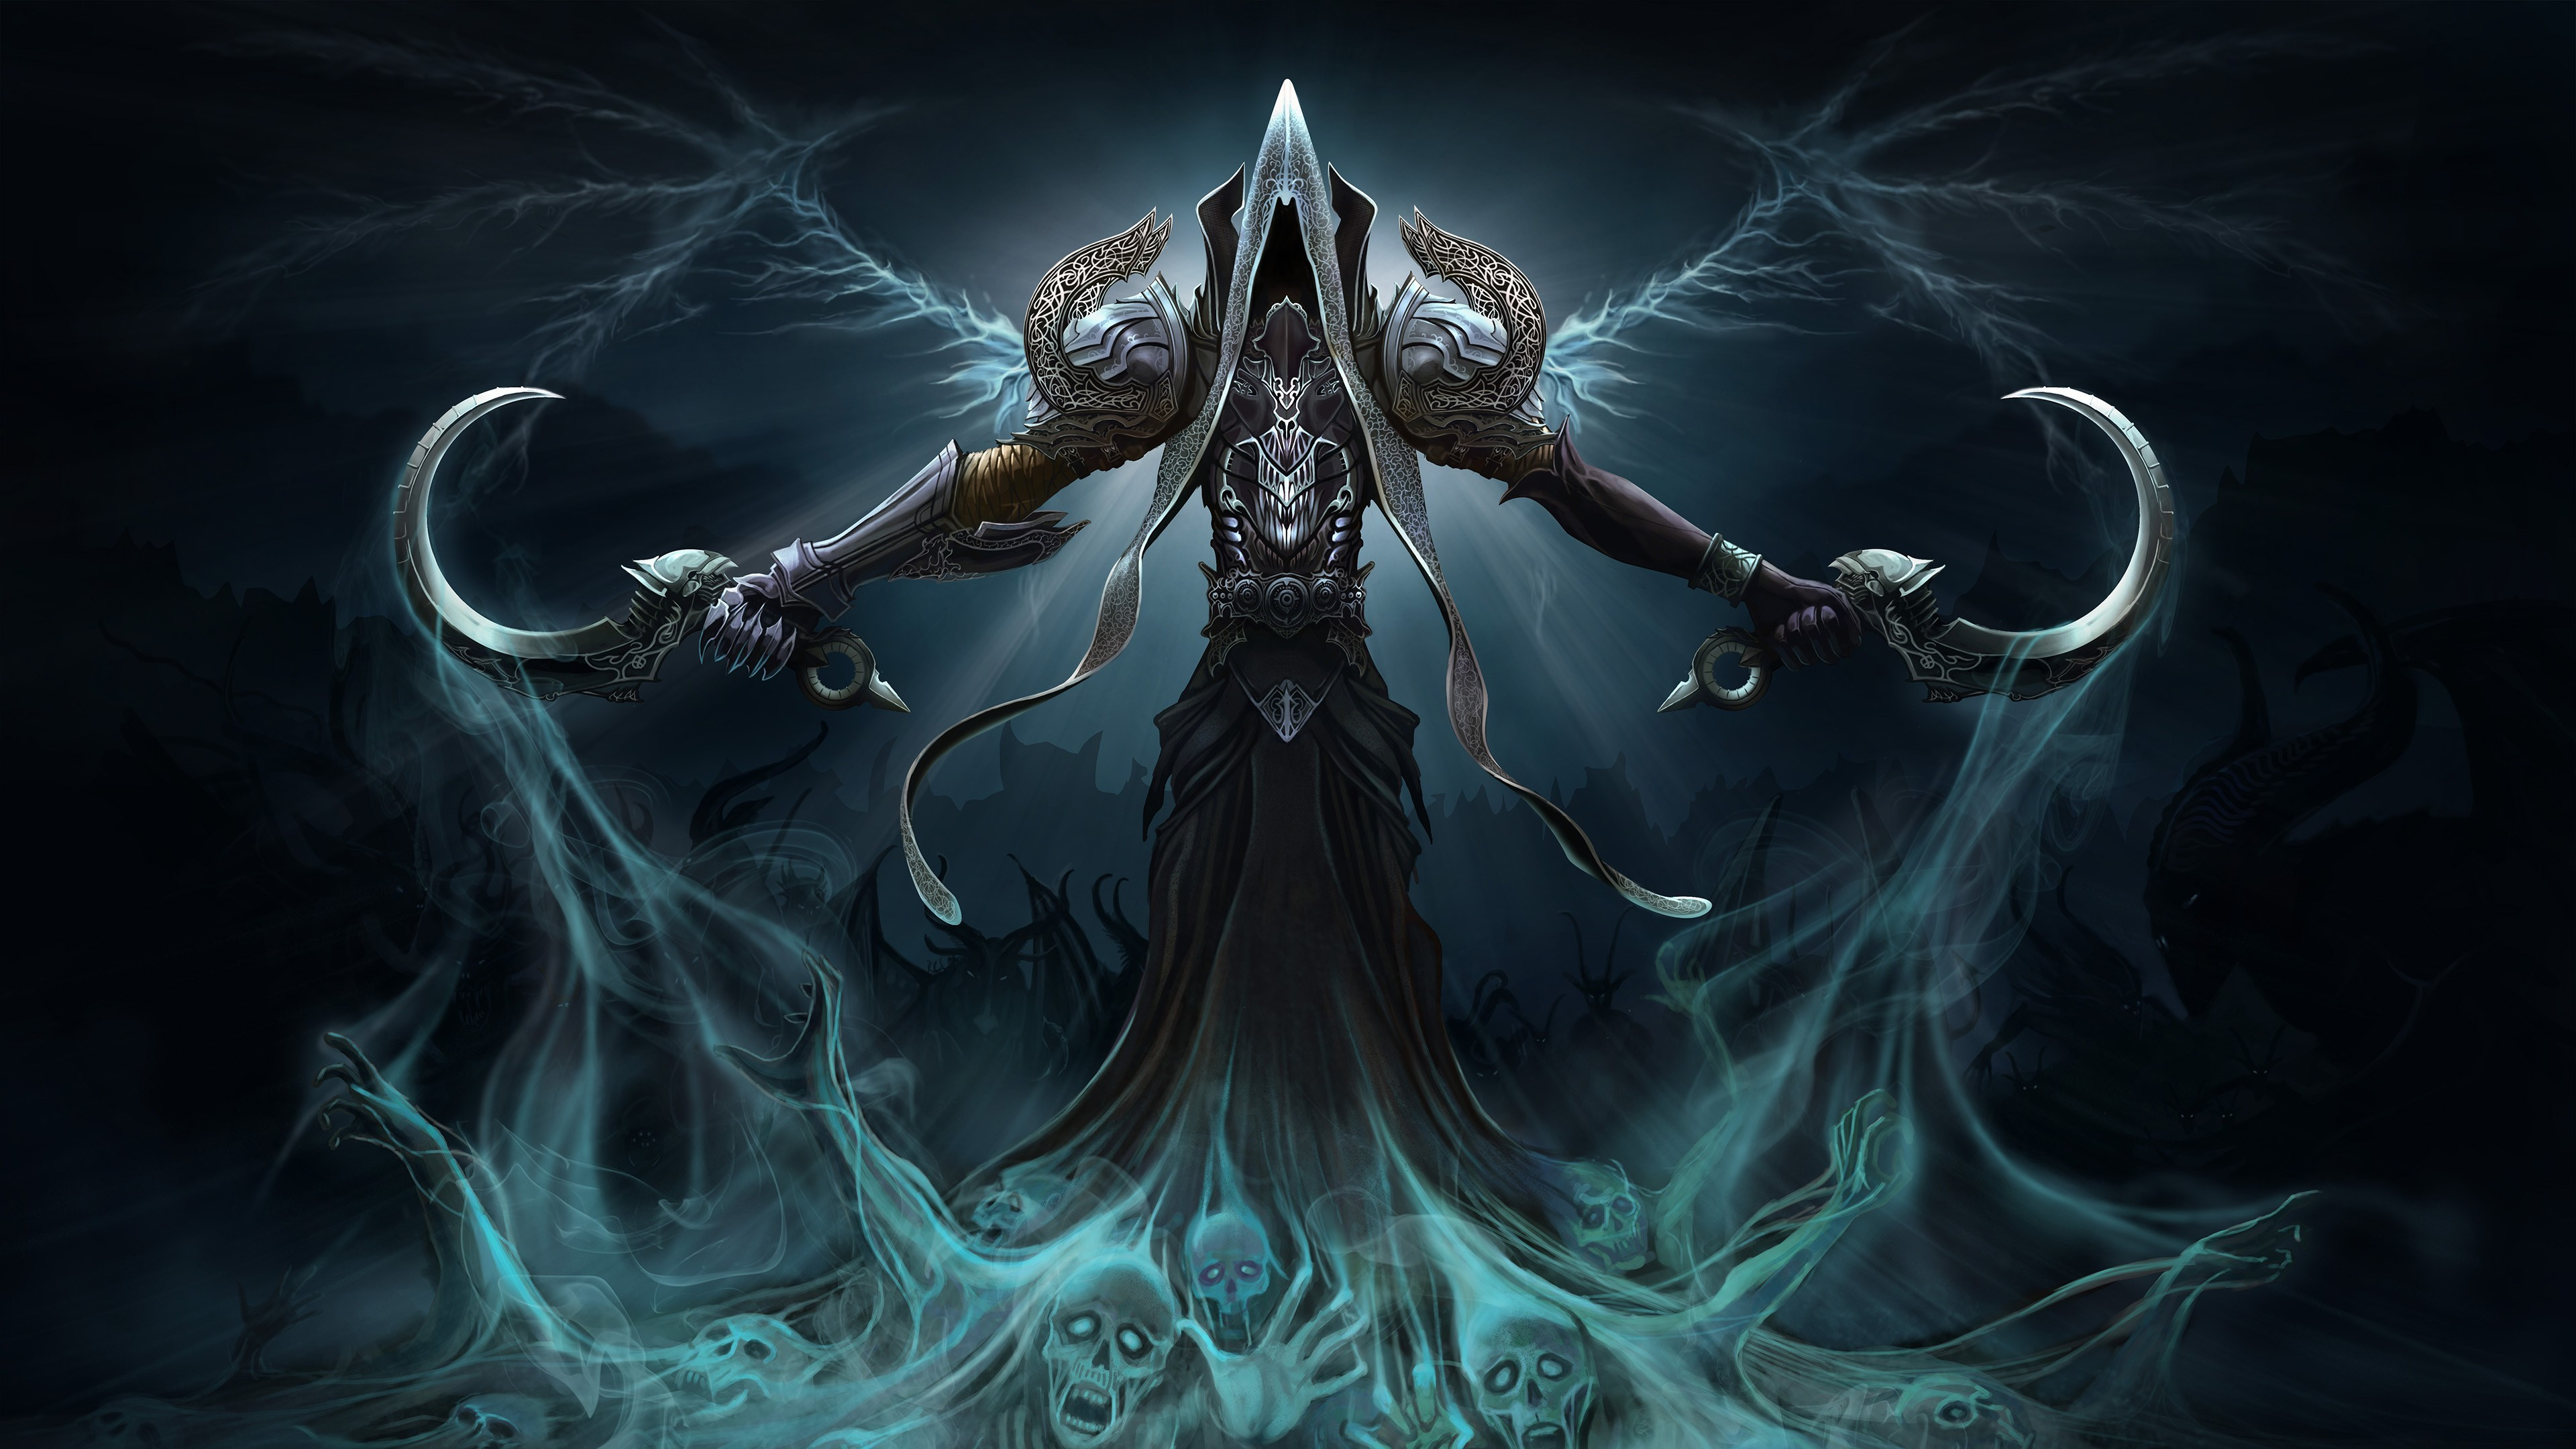 Diablo 3 Demon Hunter Wallpaper 1920x1080 Posted By Zoey Cunningham